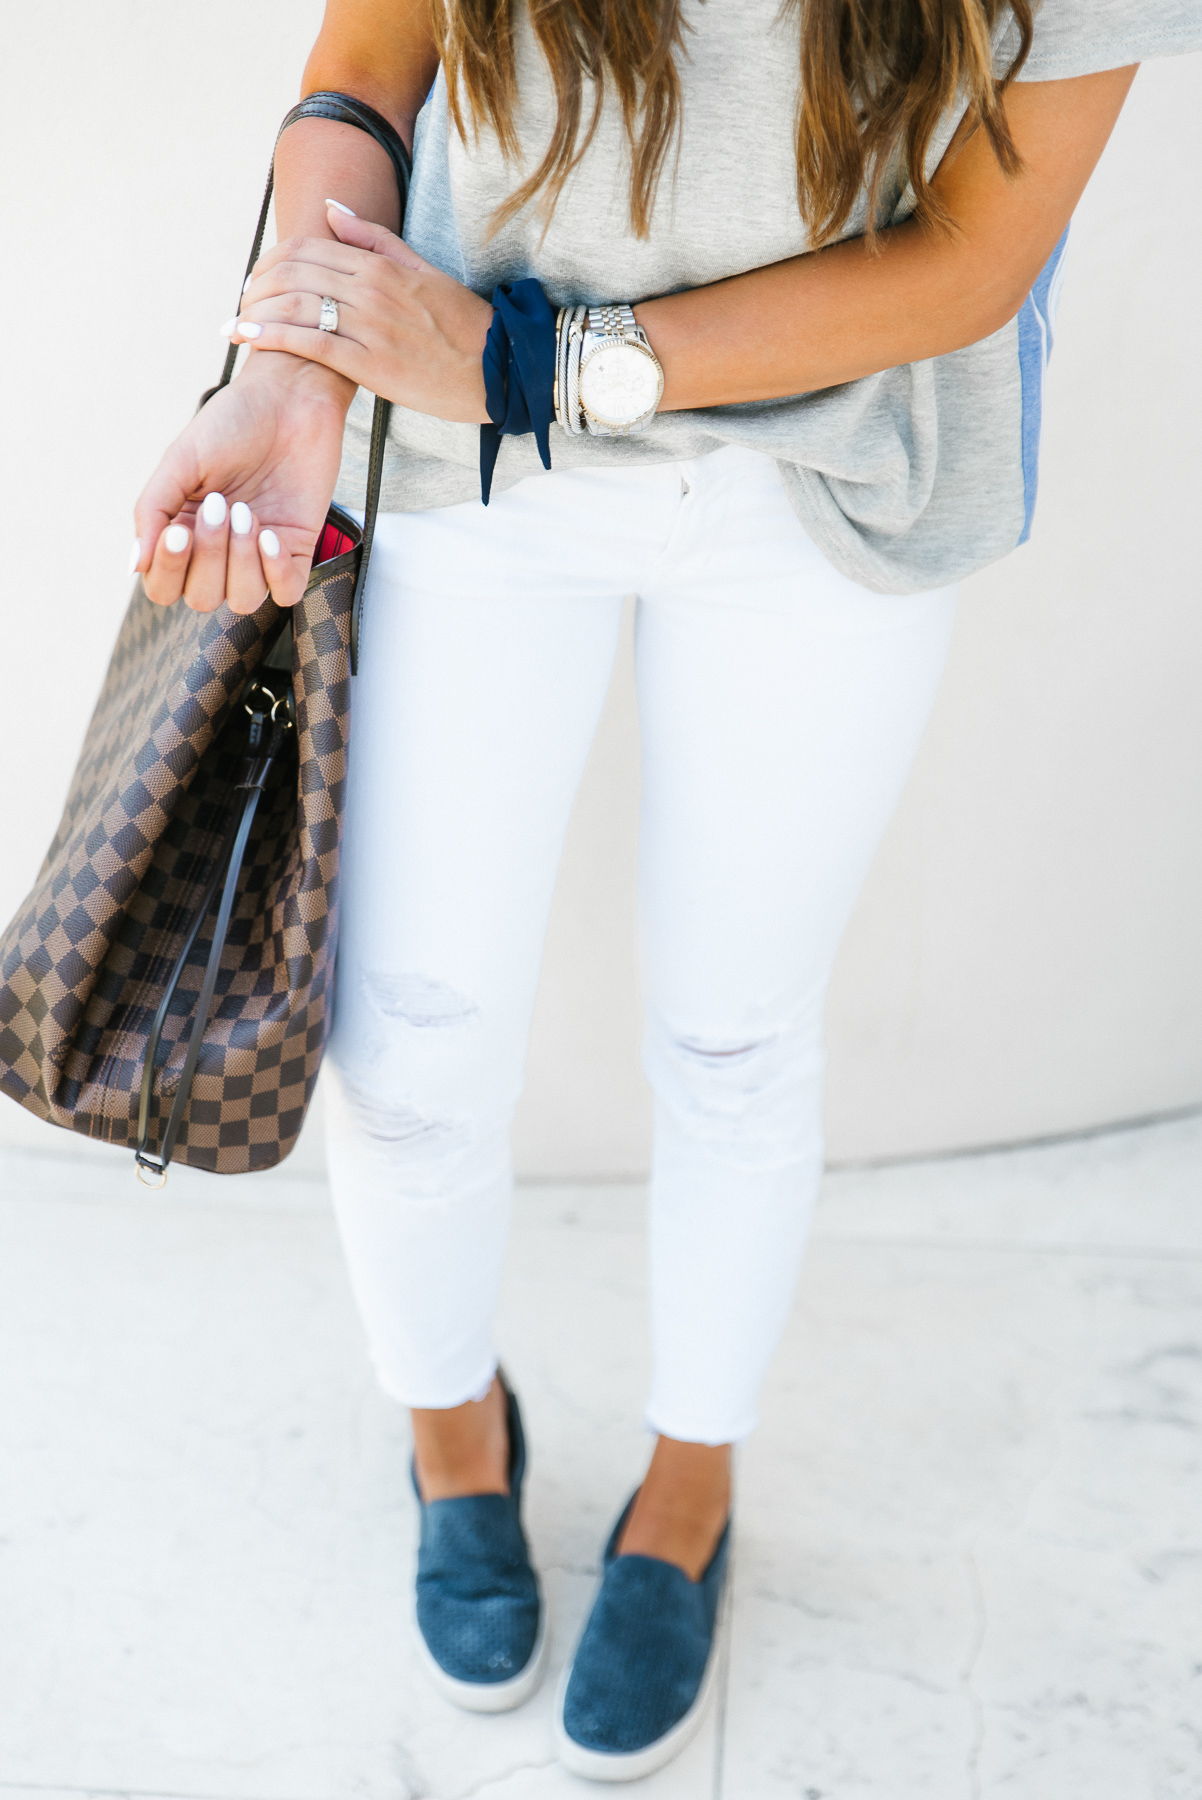 Dress Up Buttercup, Dede Raad, Houston Blogger, Fashion Blogger, Basic tshirt, stripe back t-shirt, tassel earrings, casual outfit, white jeans